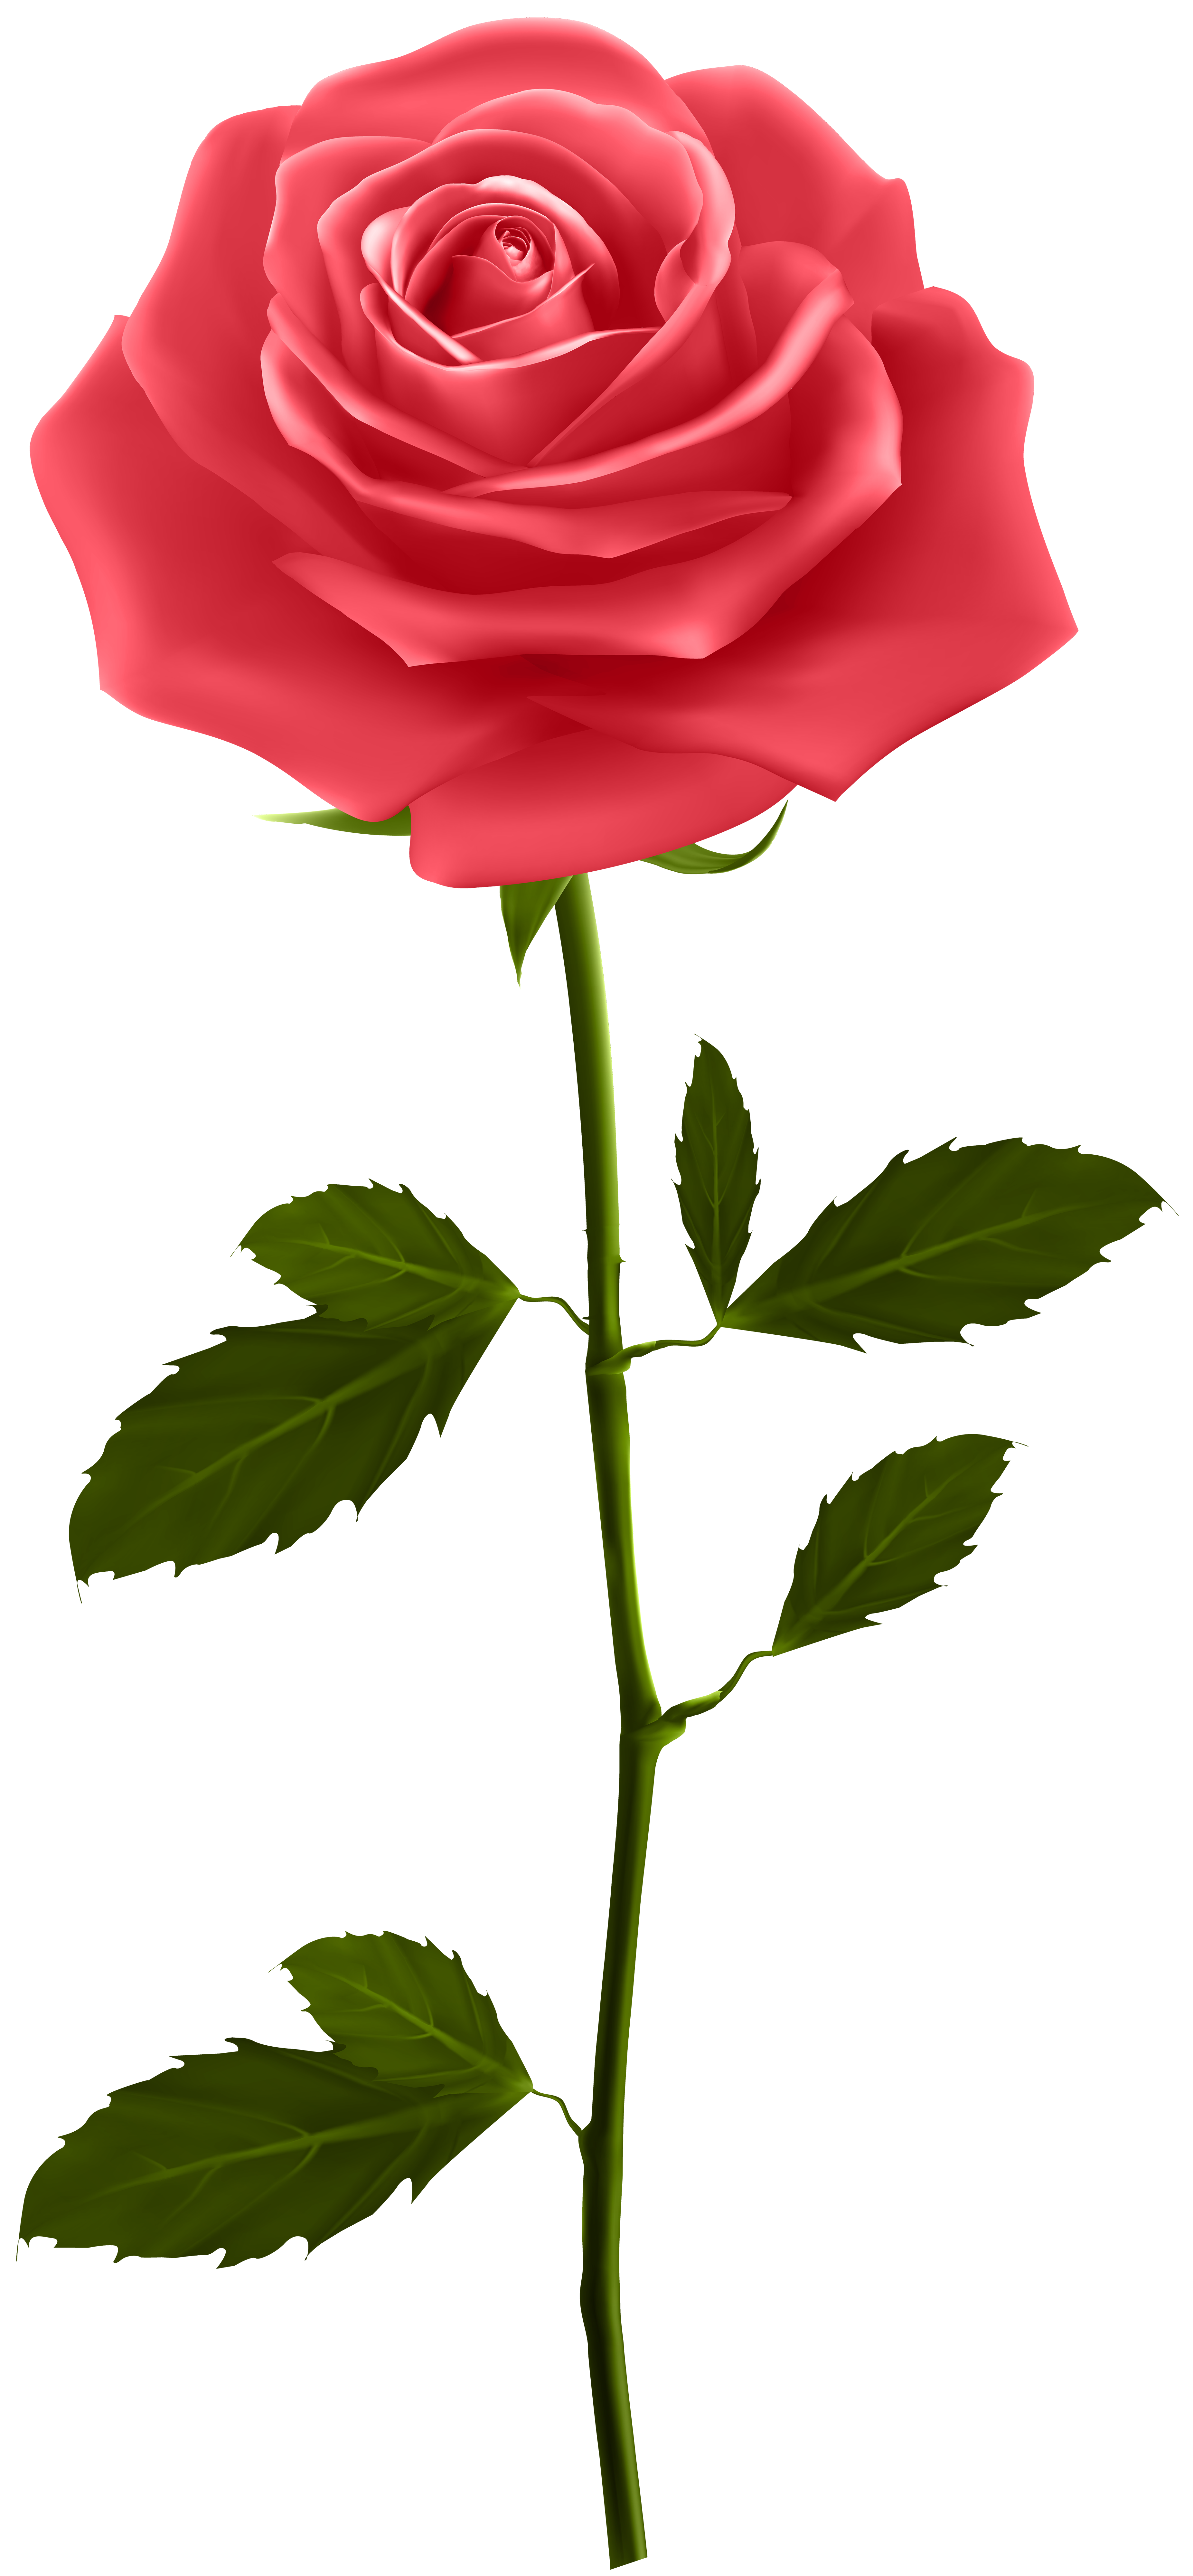 Red Rose with Stem PNG Clip Art | Gallery Yopriceville - High ... for Transparent Png Images Roses  29jwn